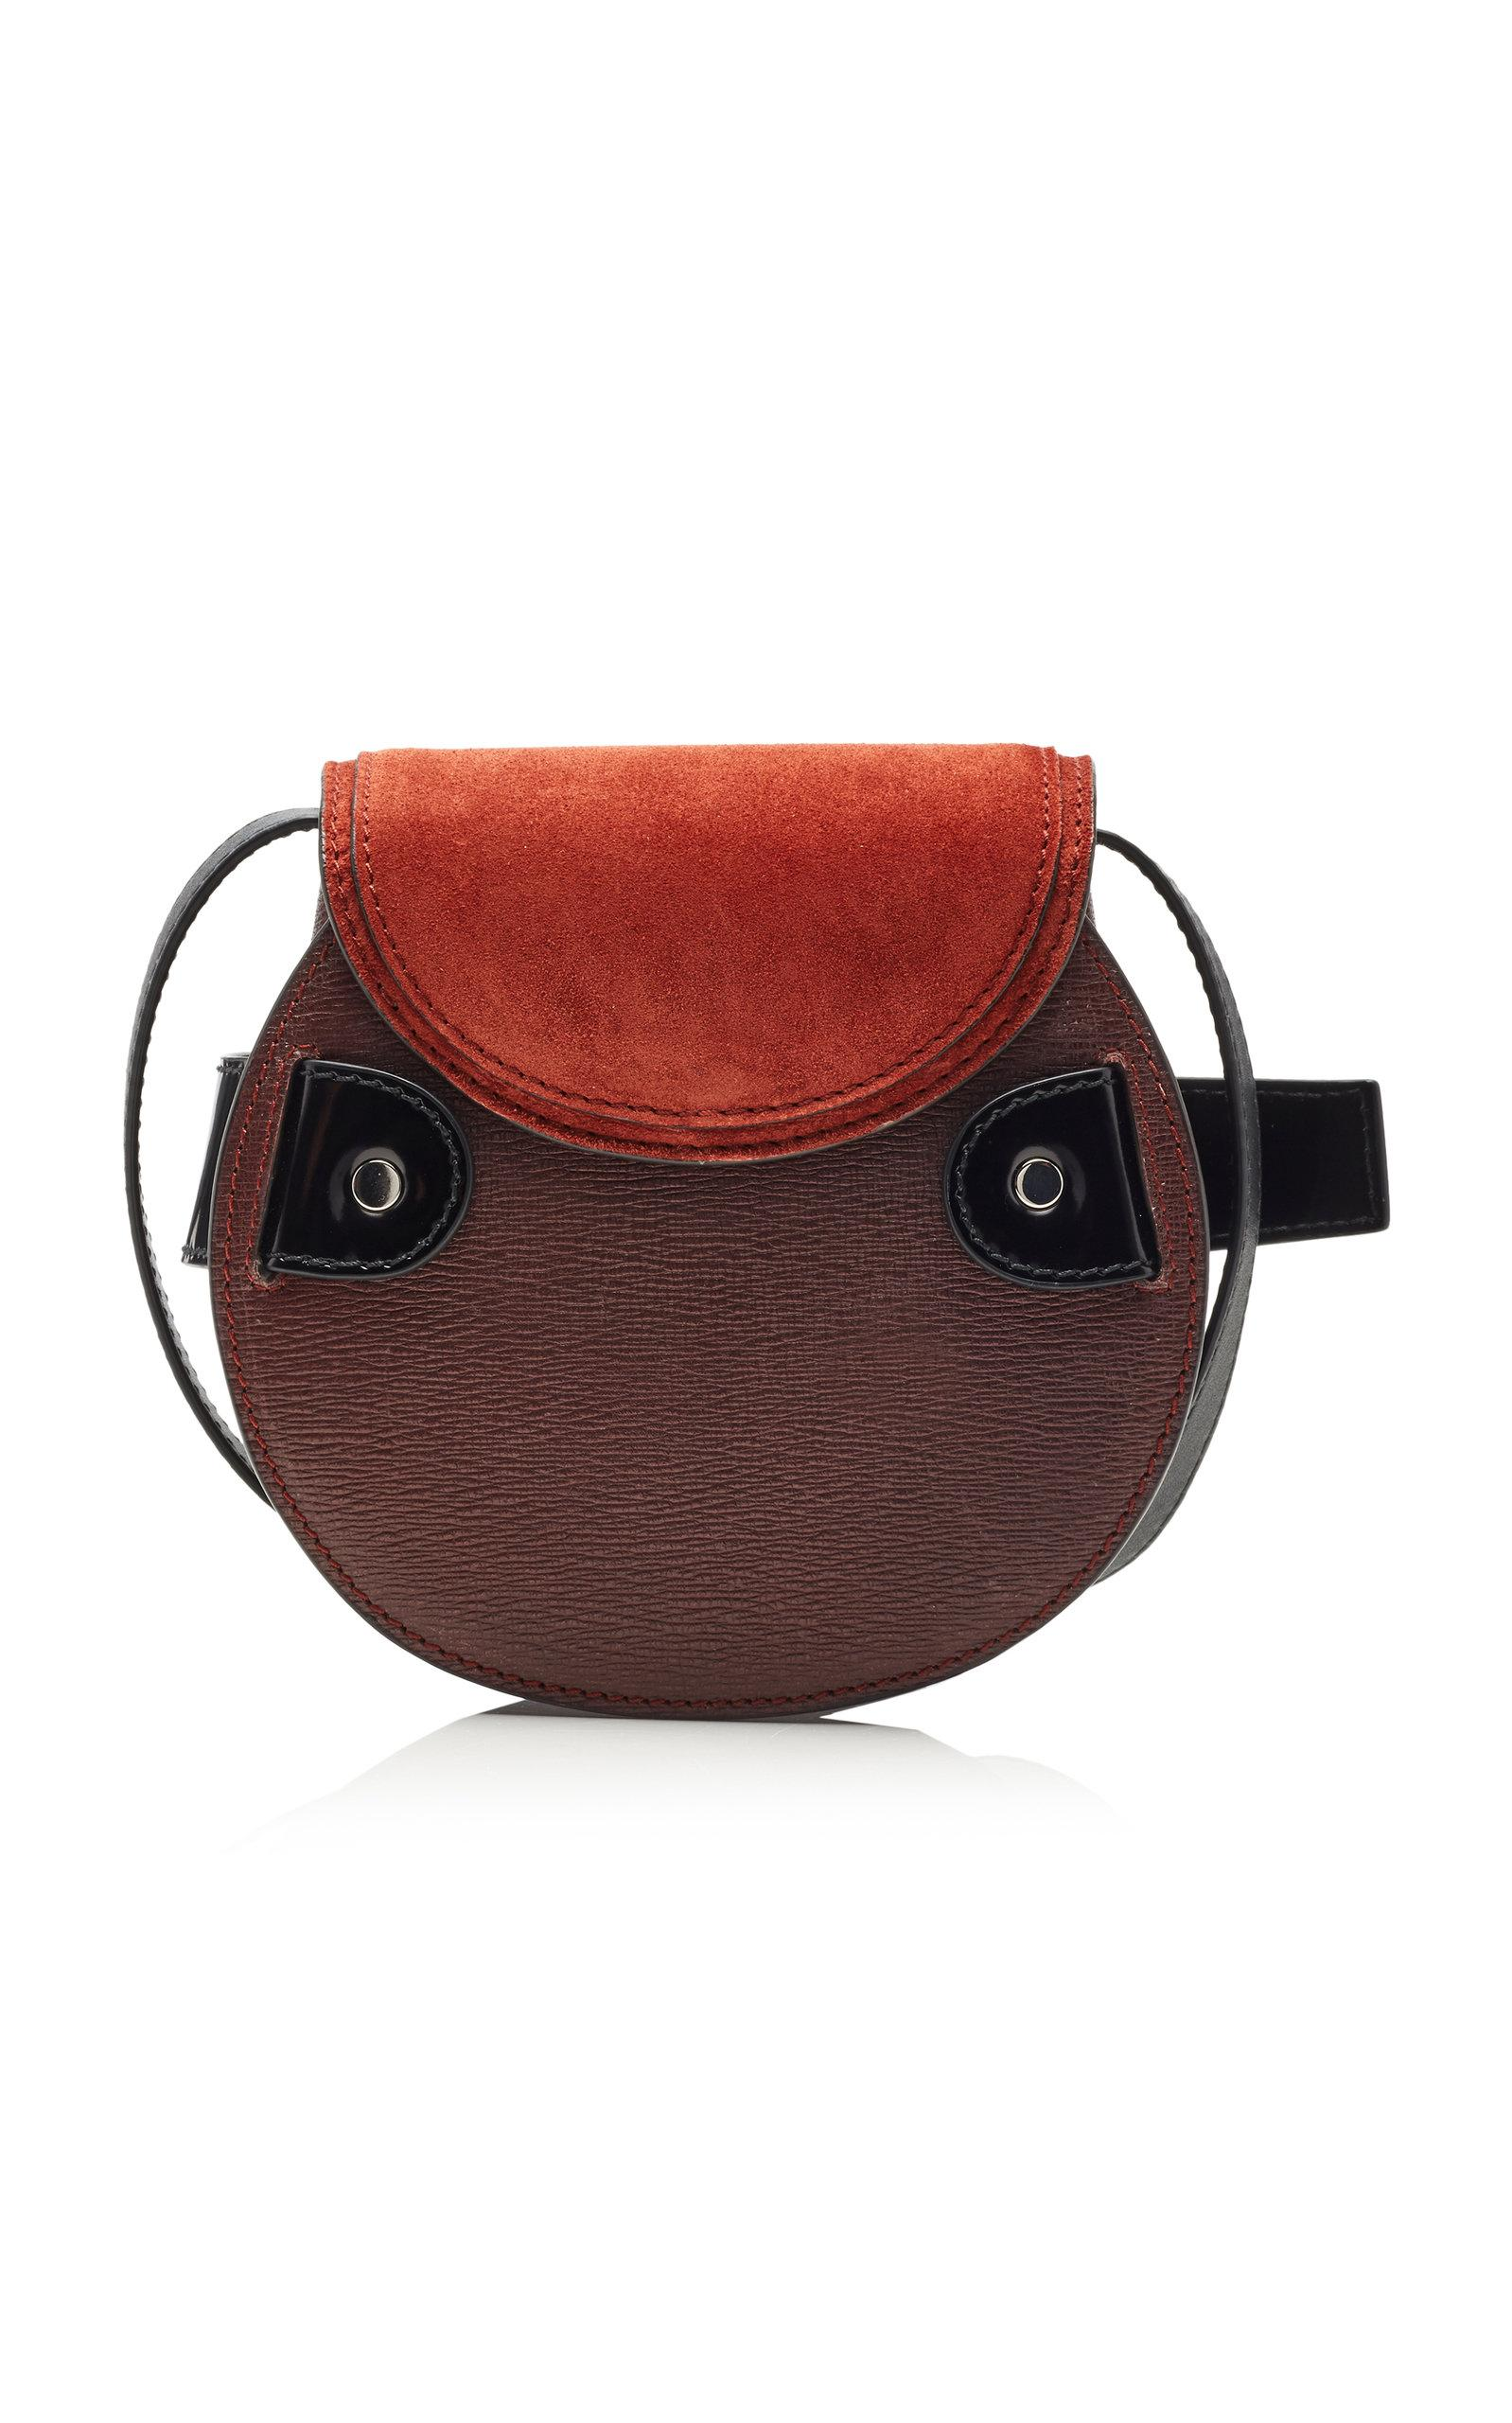 RED WESTERN CROSS WINGS AND BROWN SEQUENCE LOOK SHOULDER HANDBAG CONCEALED CARRY